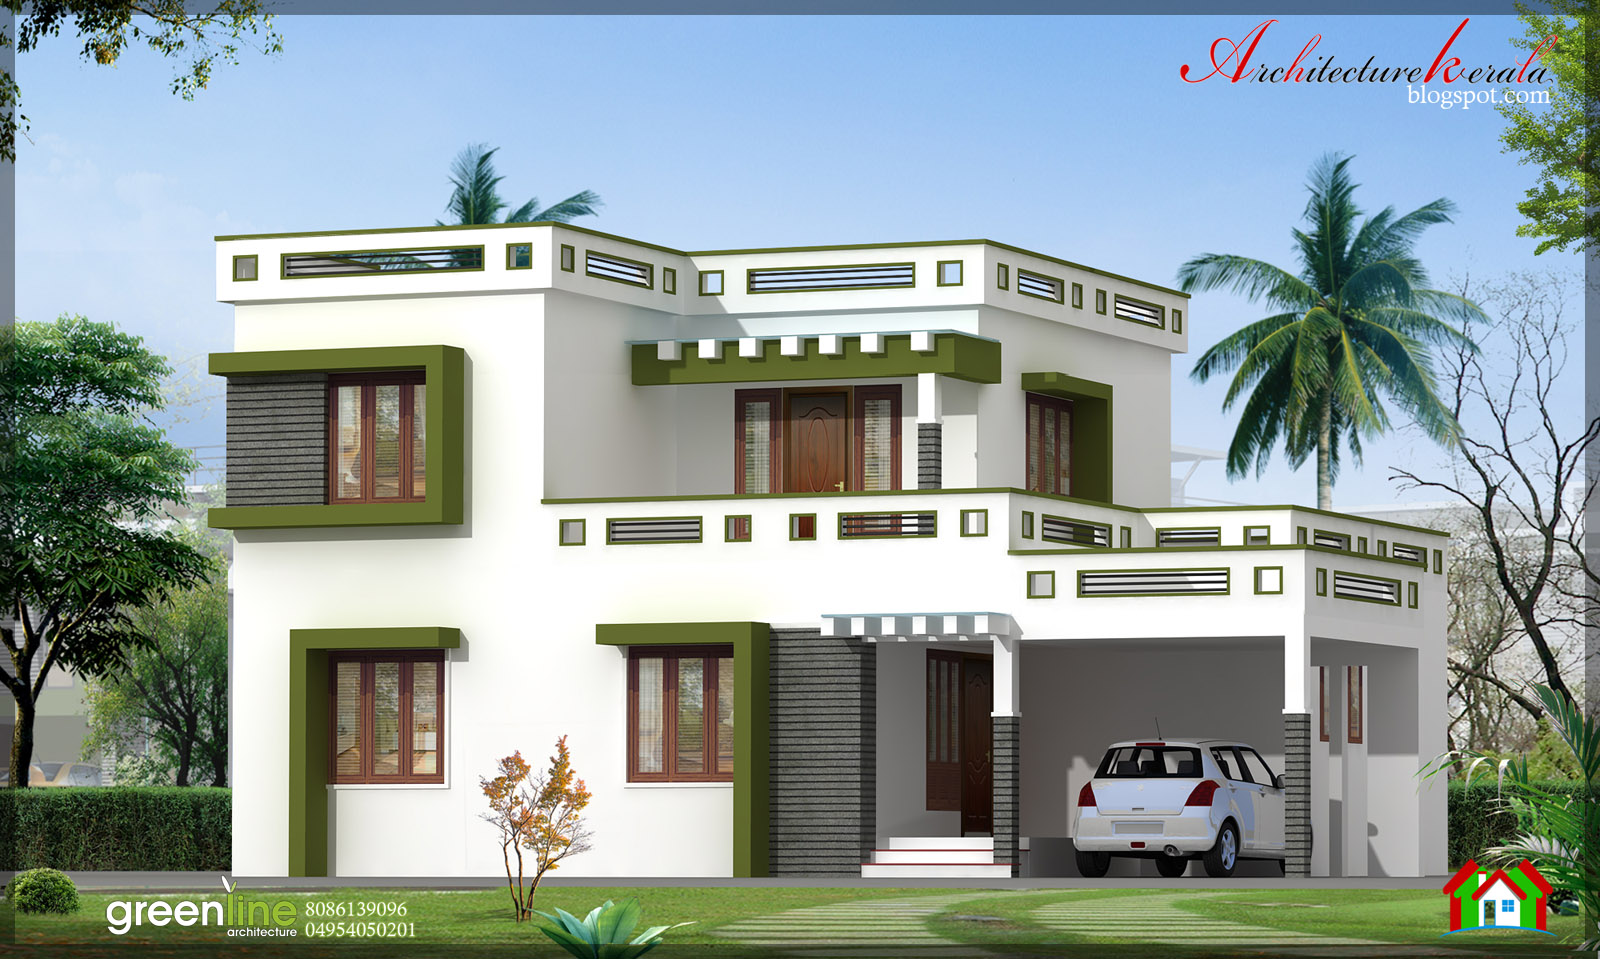 3 BHK NEW MODERN STYLE KERALA HOME DESIGN IN 1700 SQ FT Architecture Kerala